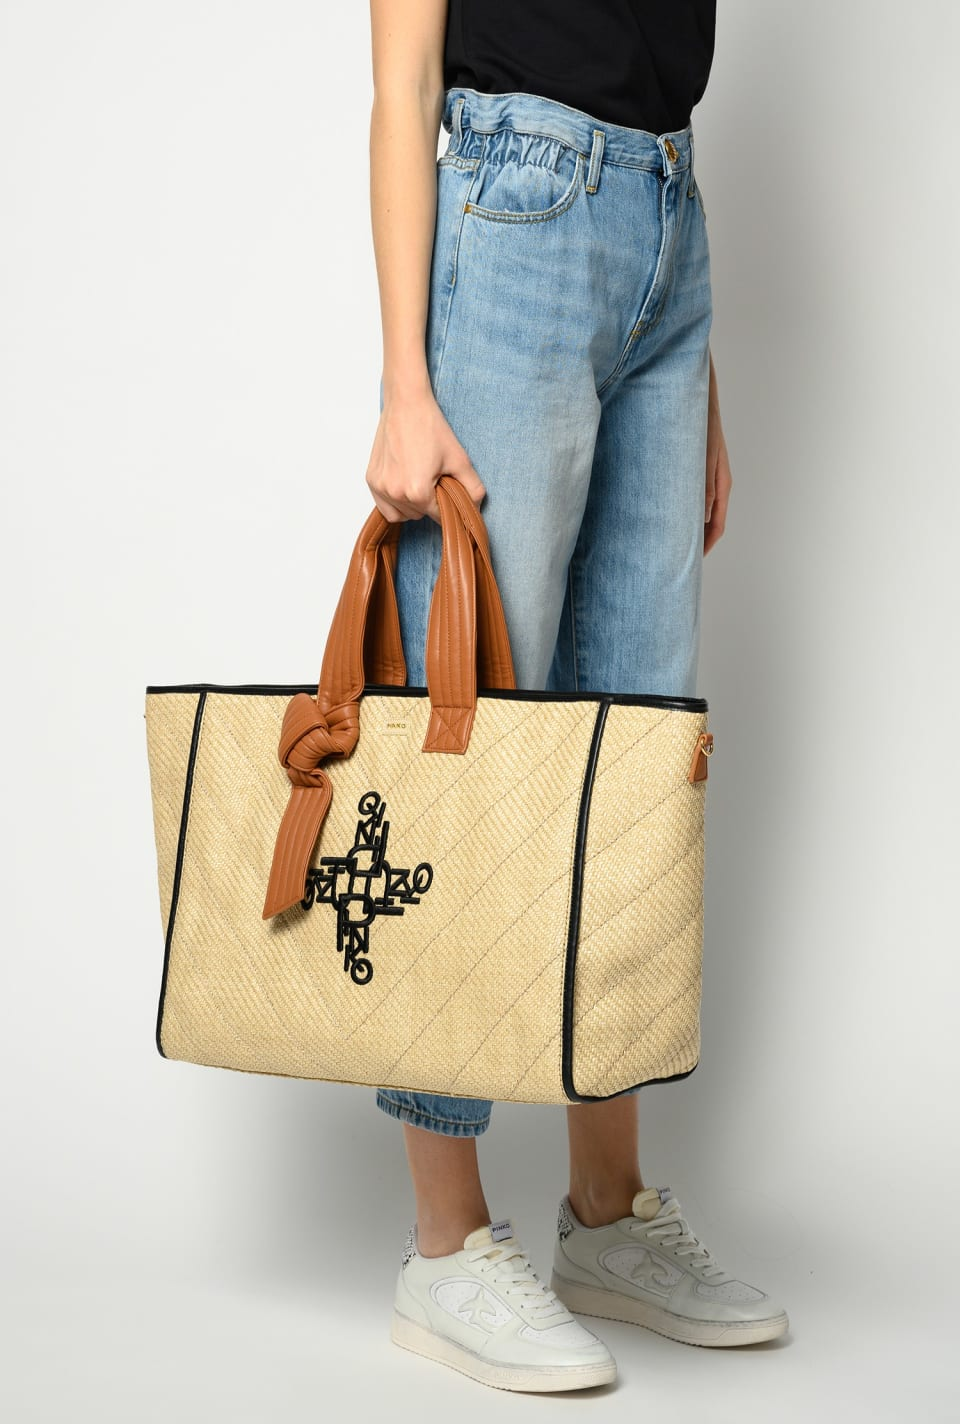 Big Shopping Bag in embroidered raffia - Pinko